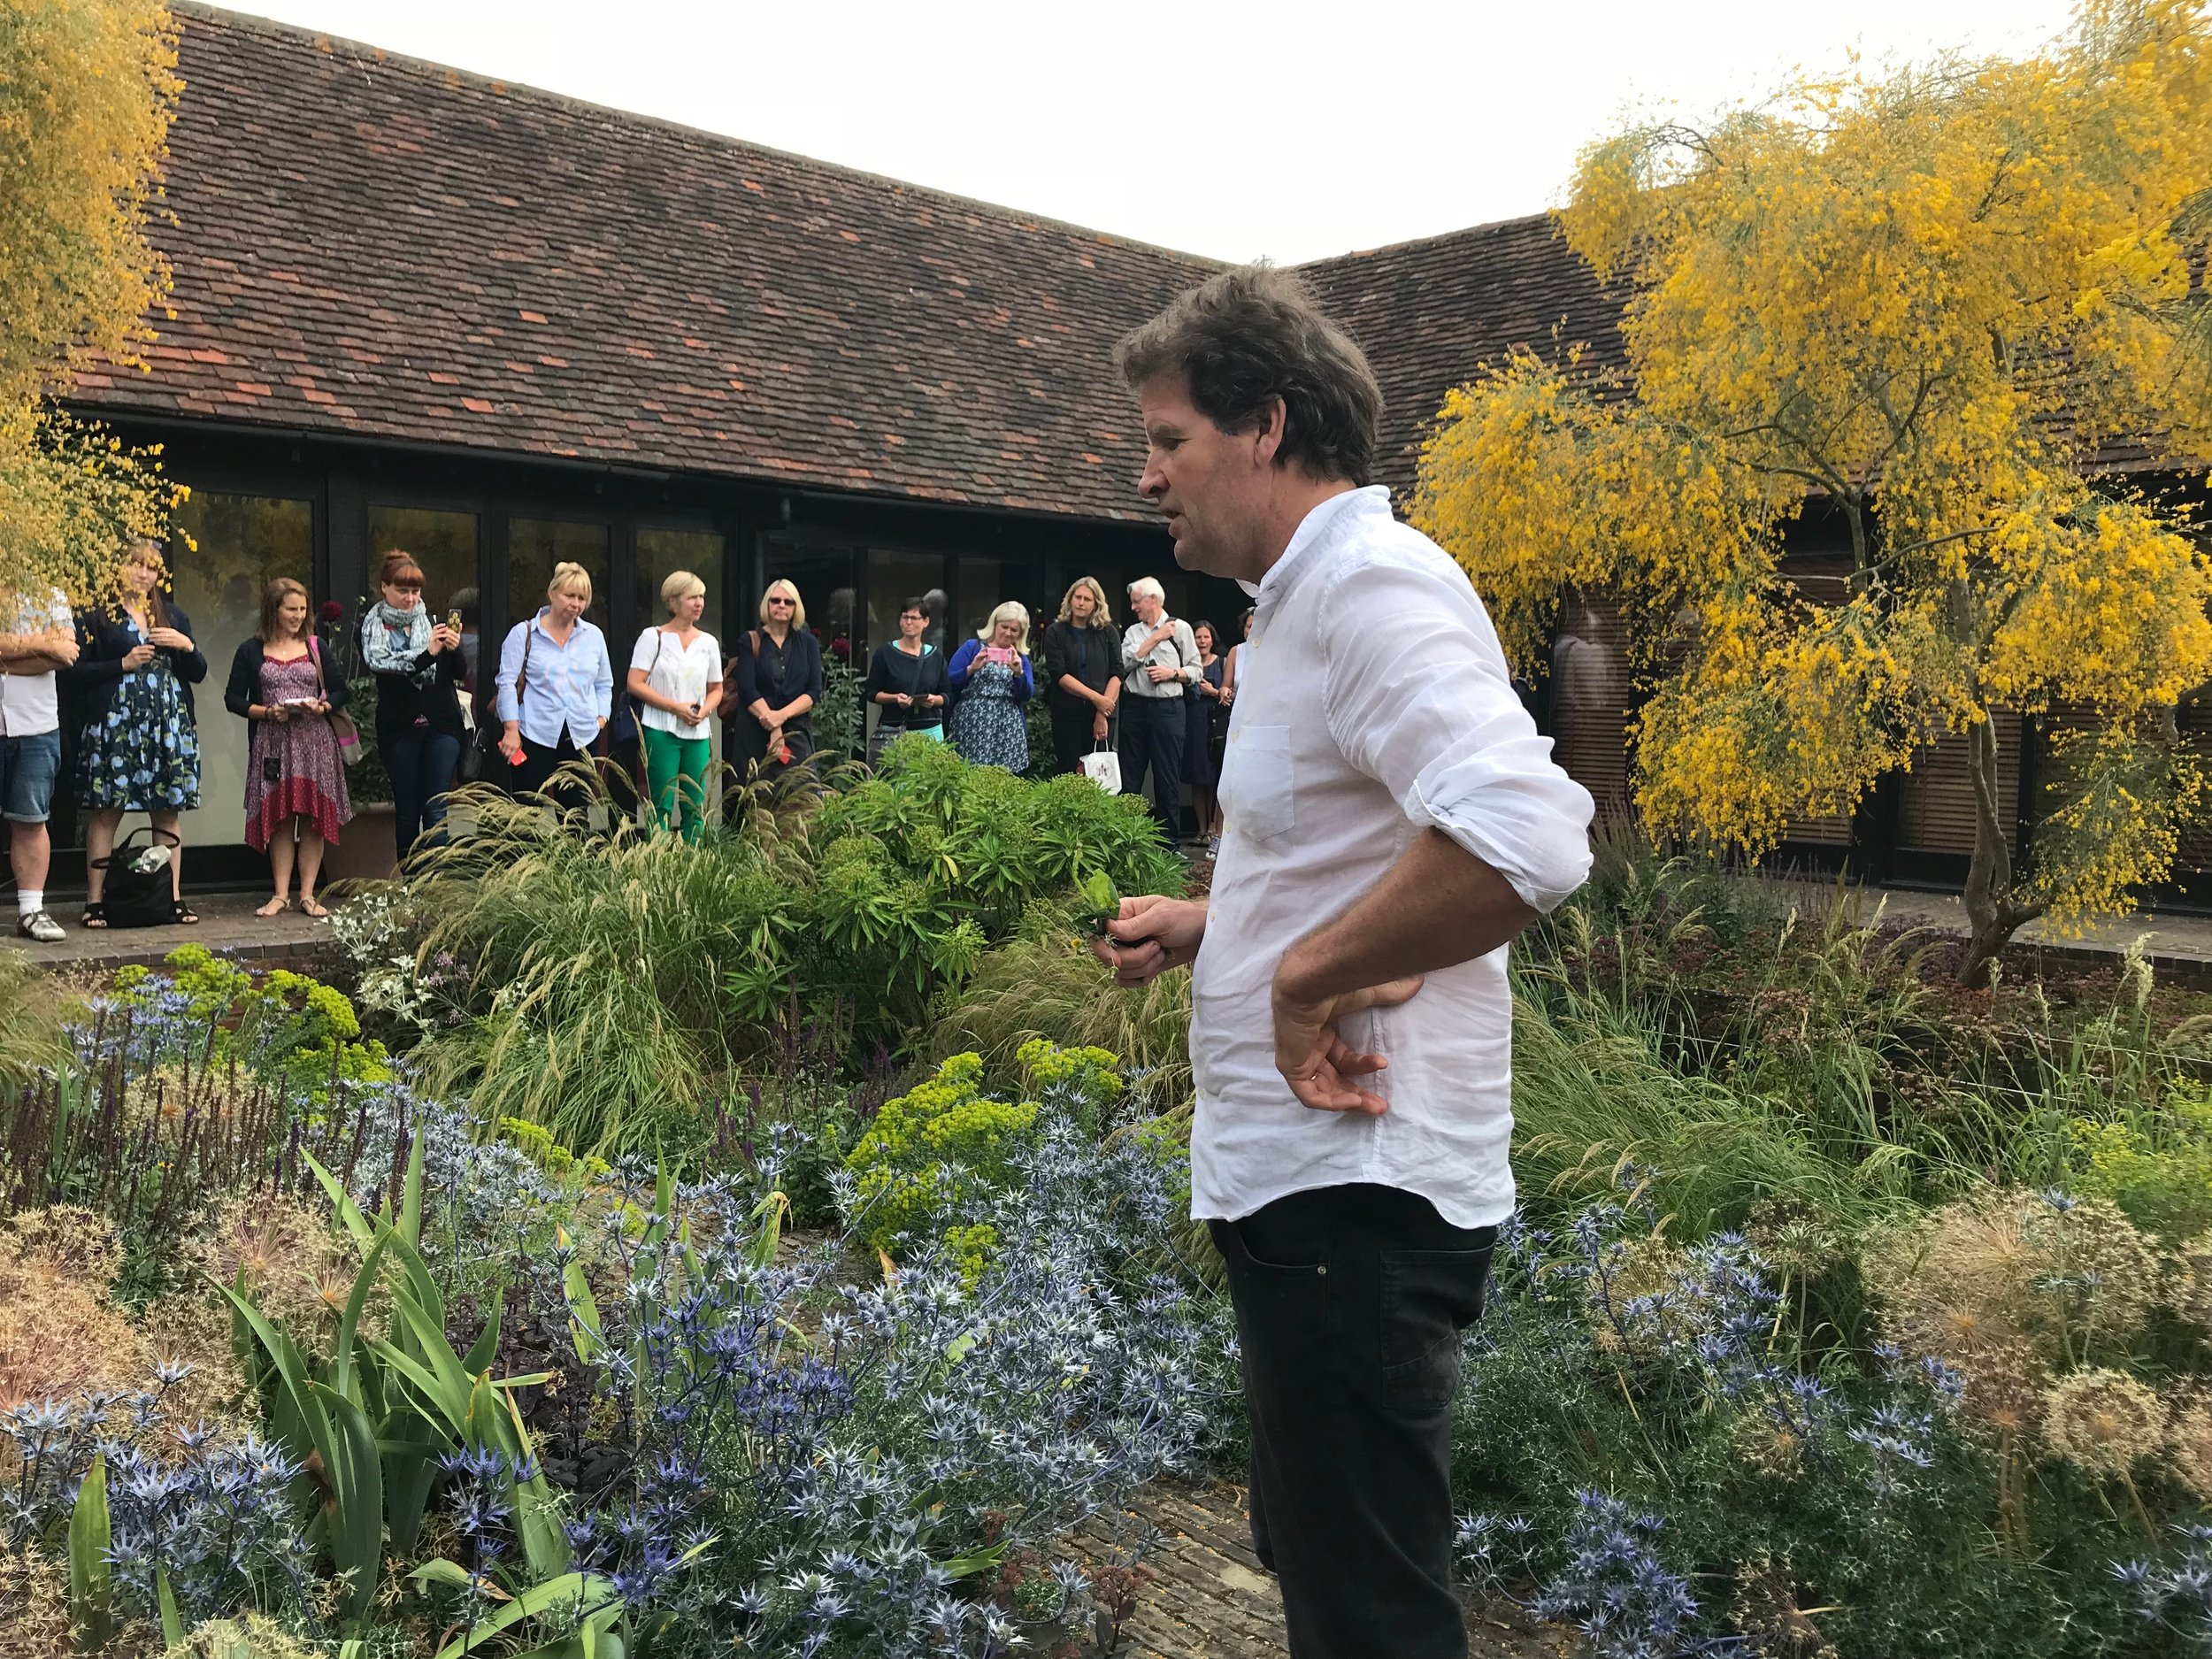 Tom in the courtyard garden – generously sharing his vast knowledge and creative genius, and inspiring fellow garden designers, July 2018  (Gillian Goodson Designs)